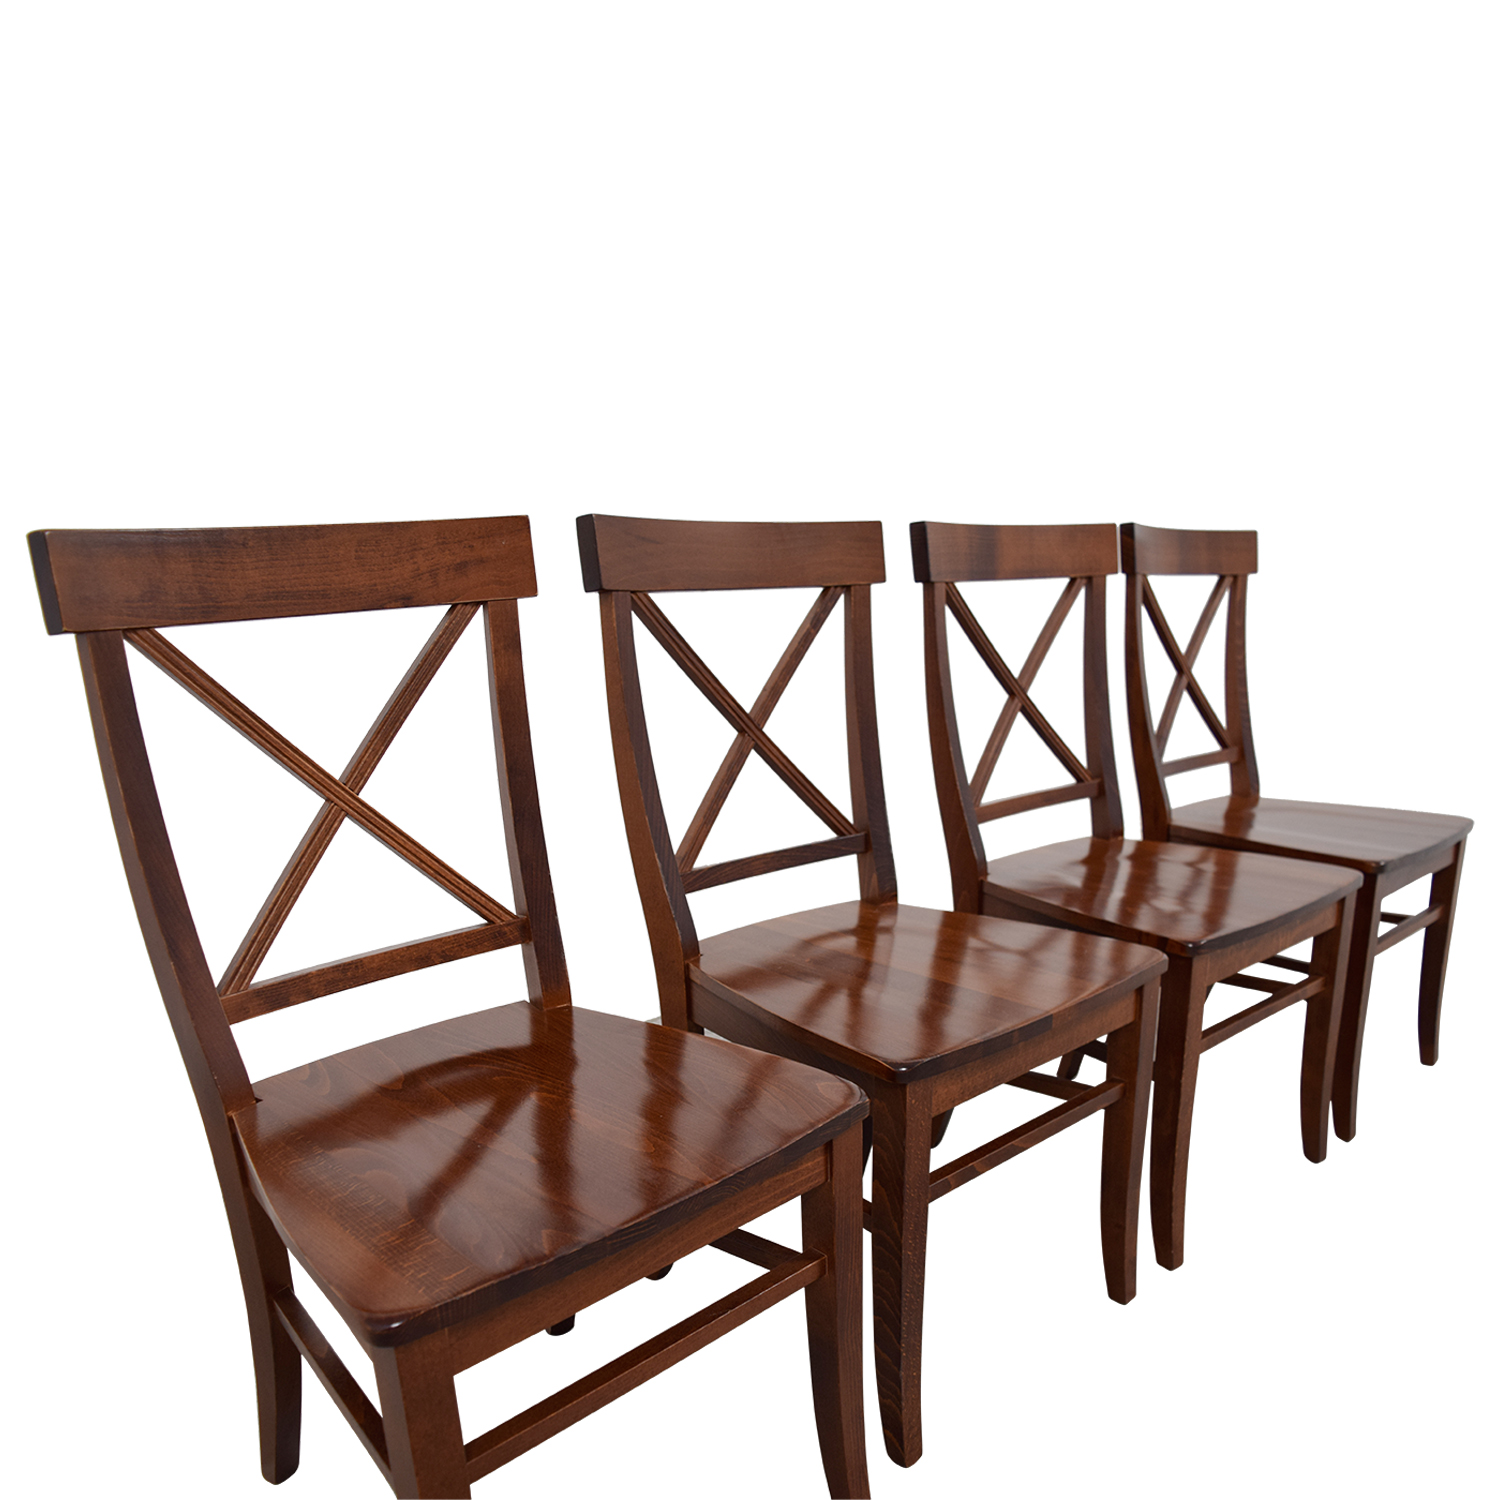 84% OFF - Pottery Barn Pottery Barn Aaron Wood Dining Chairs / Chairs